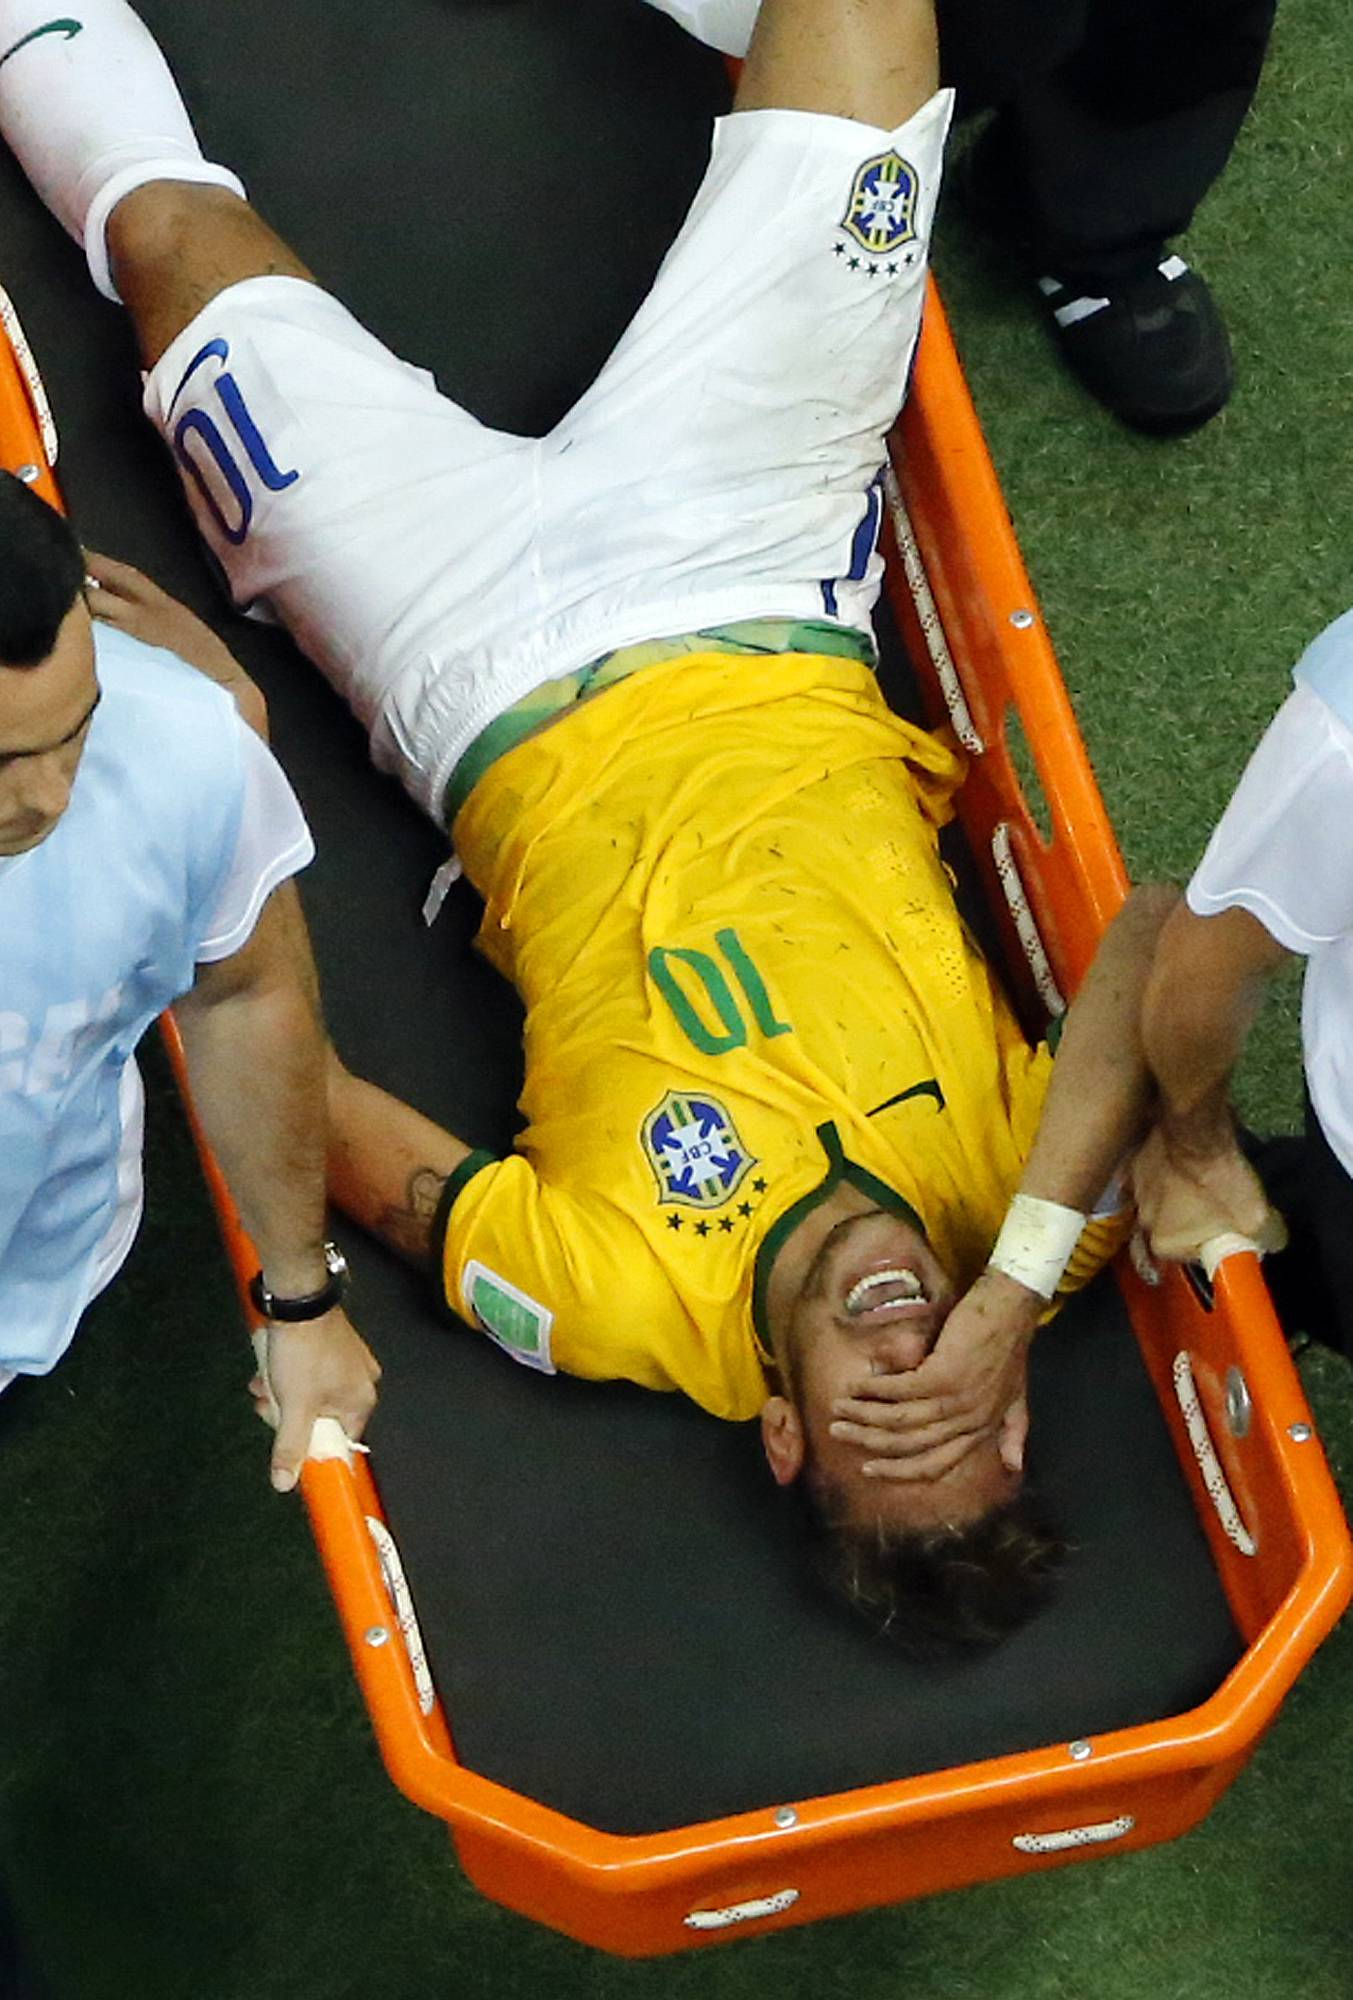 Brazil's Neymar is carried away after getting injured during the World Cup quarterfinal soccer match between Brazil and Colombia at the Arena Castelao in Fortaleza, Brazil, Friday, July 4, 2014. Brazil's team doctor says Neymar will miss the rest of the World Cup after breaking a vertebrae during the team's quarterfinal win over Colombia.